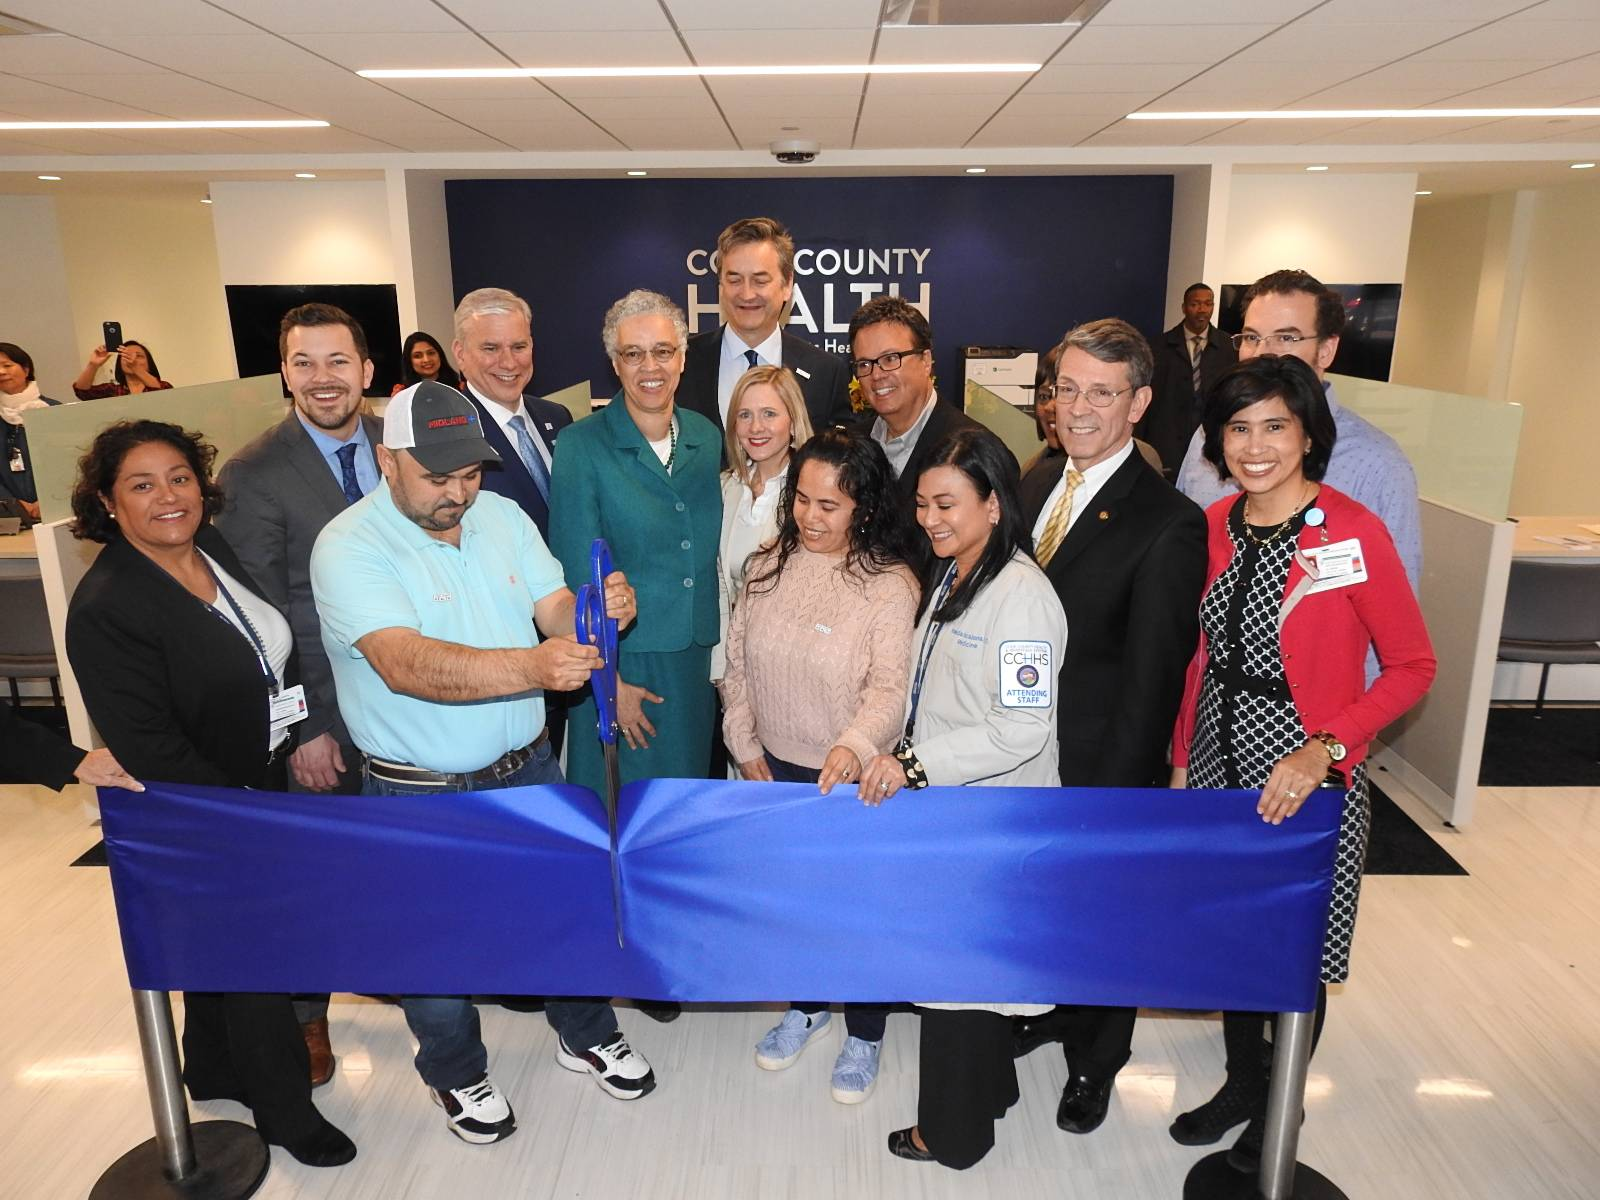 On Friday, April 12, Cook County Health held a ribbon-cutting ceremony and public open house at its new Arlington Heights Health Center.Cook County Health